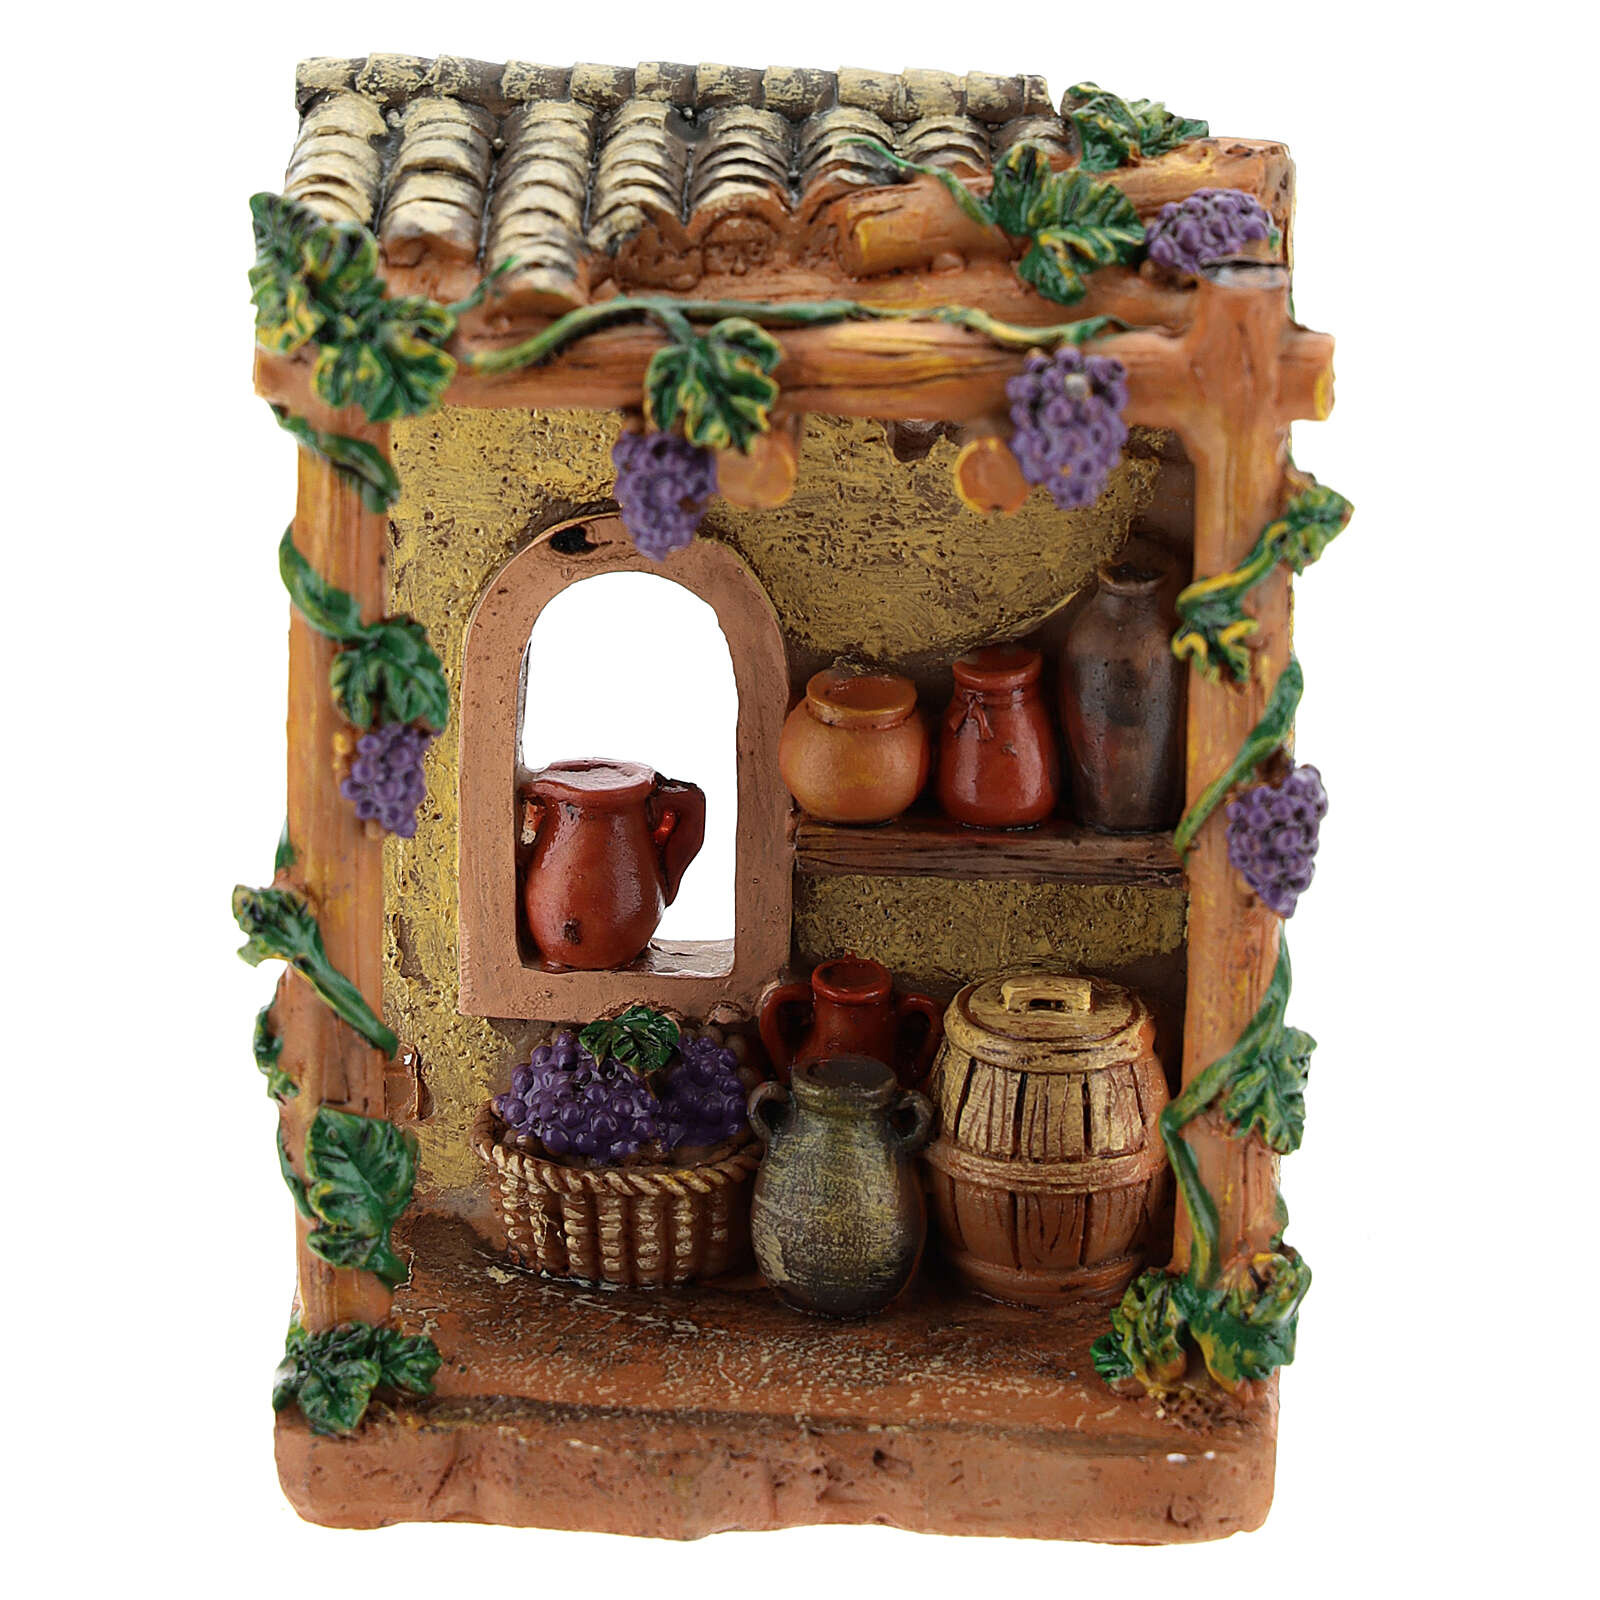 Miniature shop tavern in resin 10x7x4 cm for nativity 6-8 cm 4